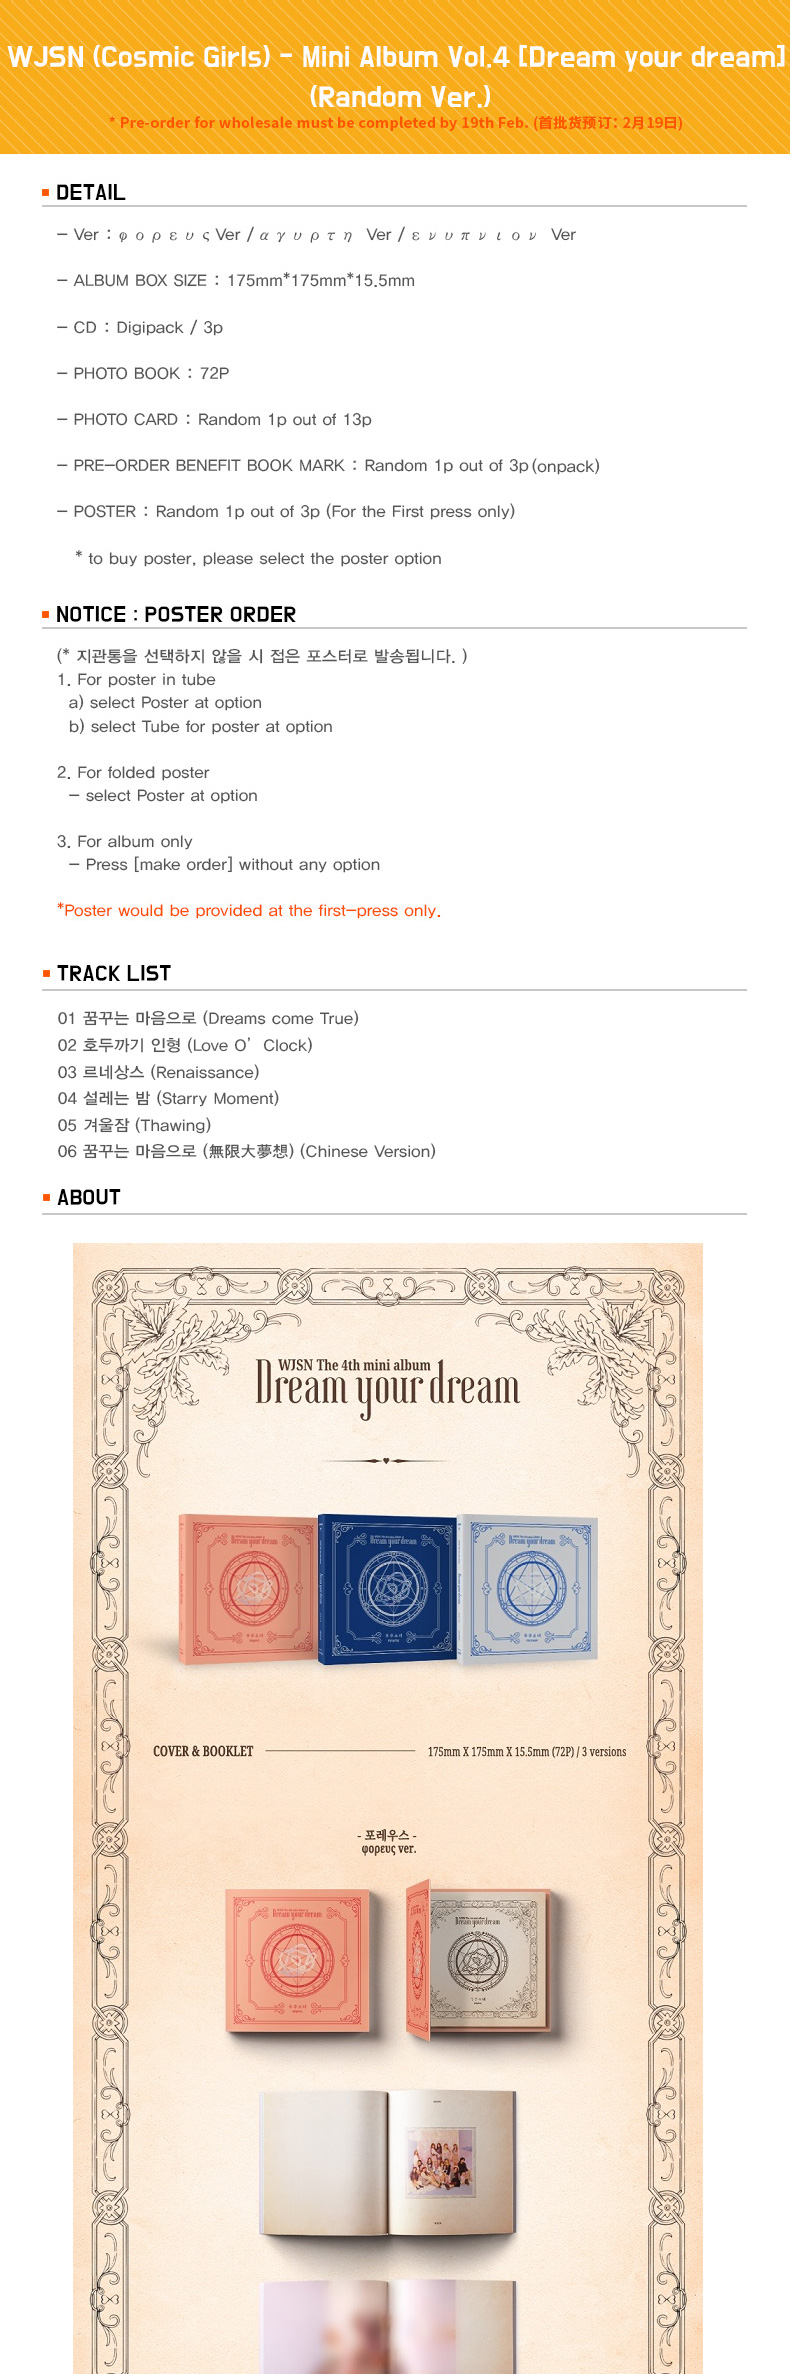 WJSN (Cosmic Girls) - Mini Album Vol.4 [Dream your dream] (Random Ver.)